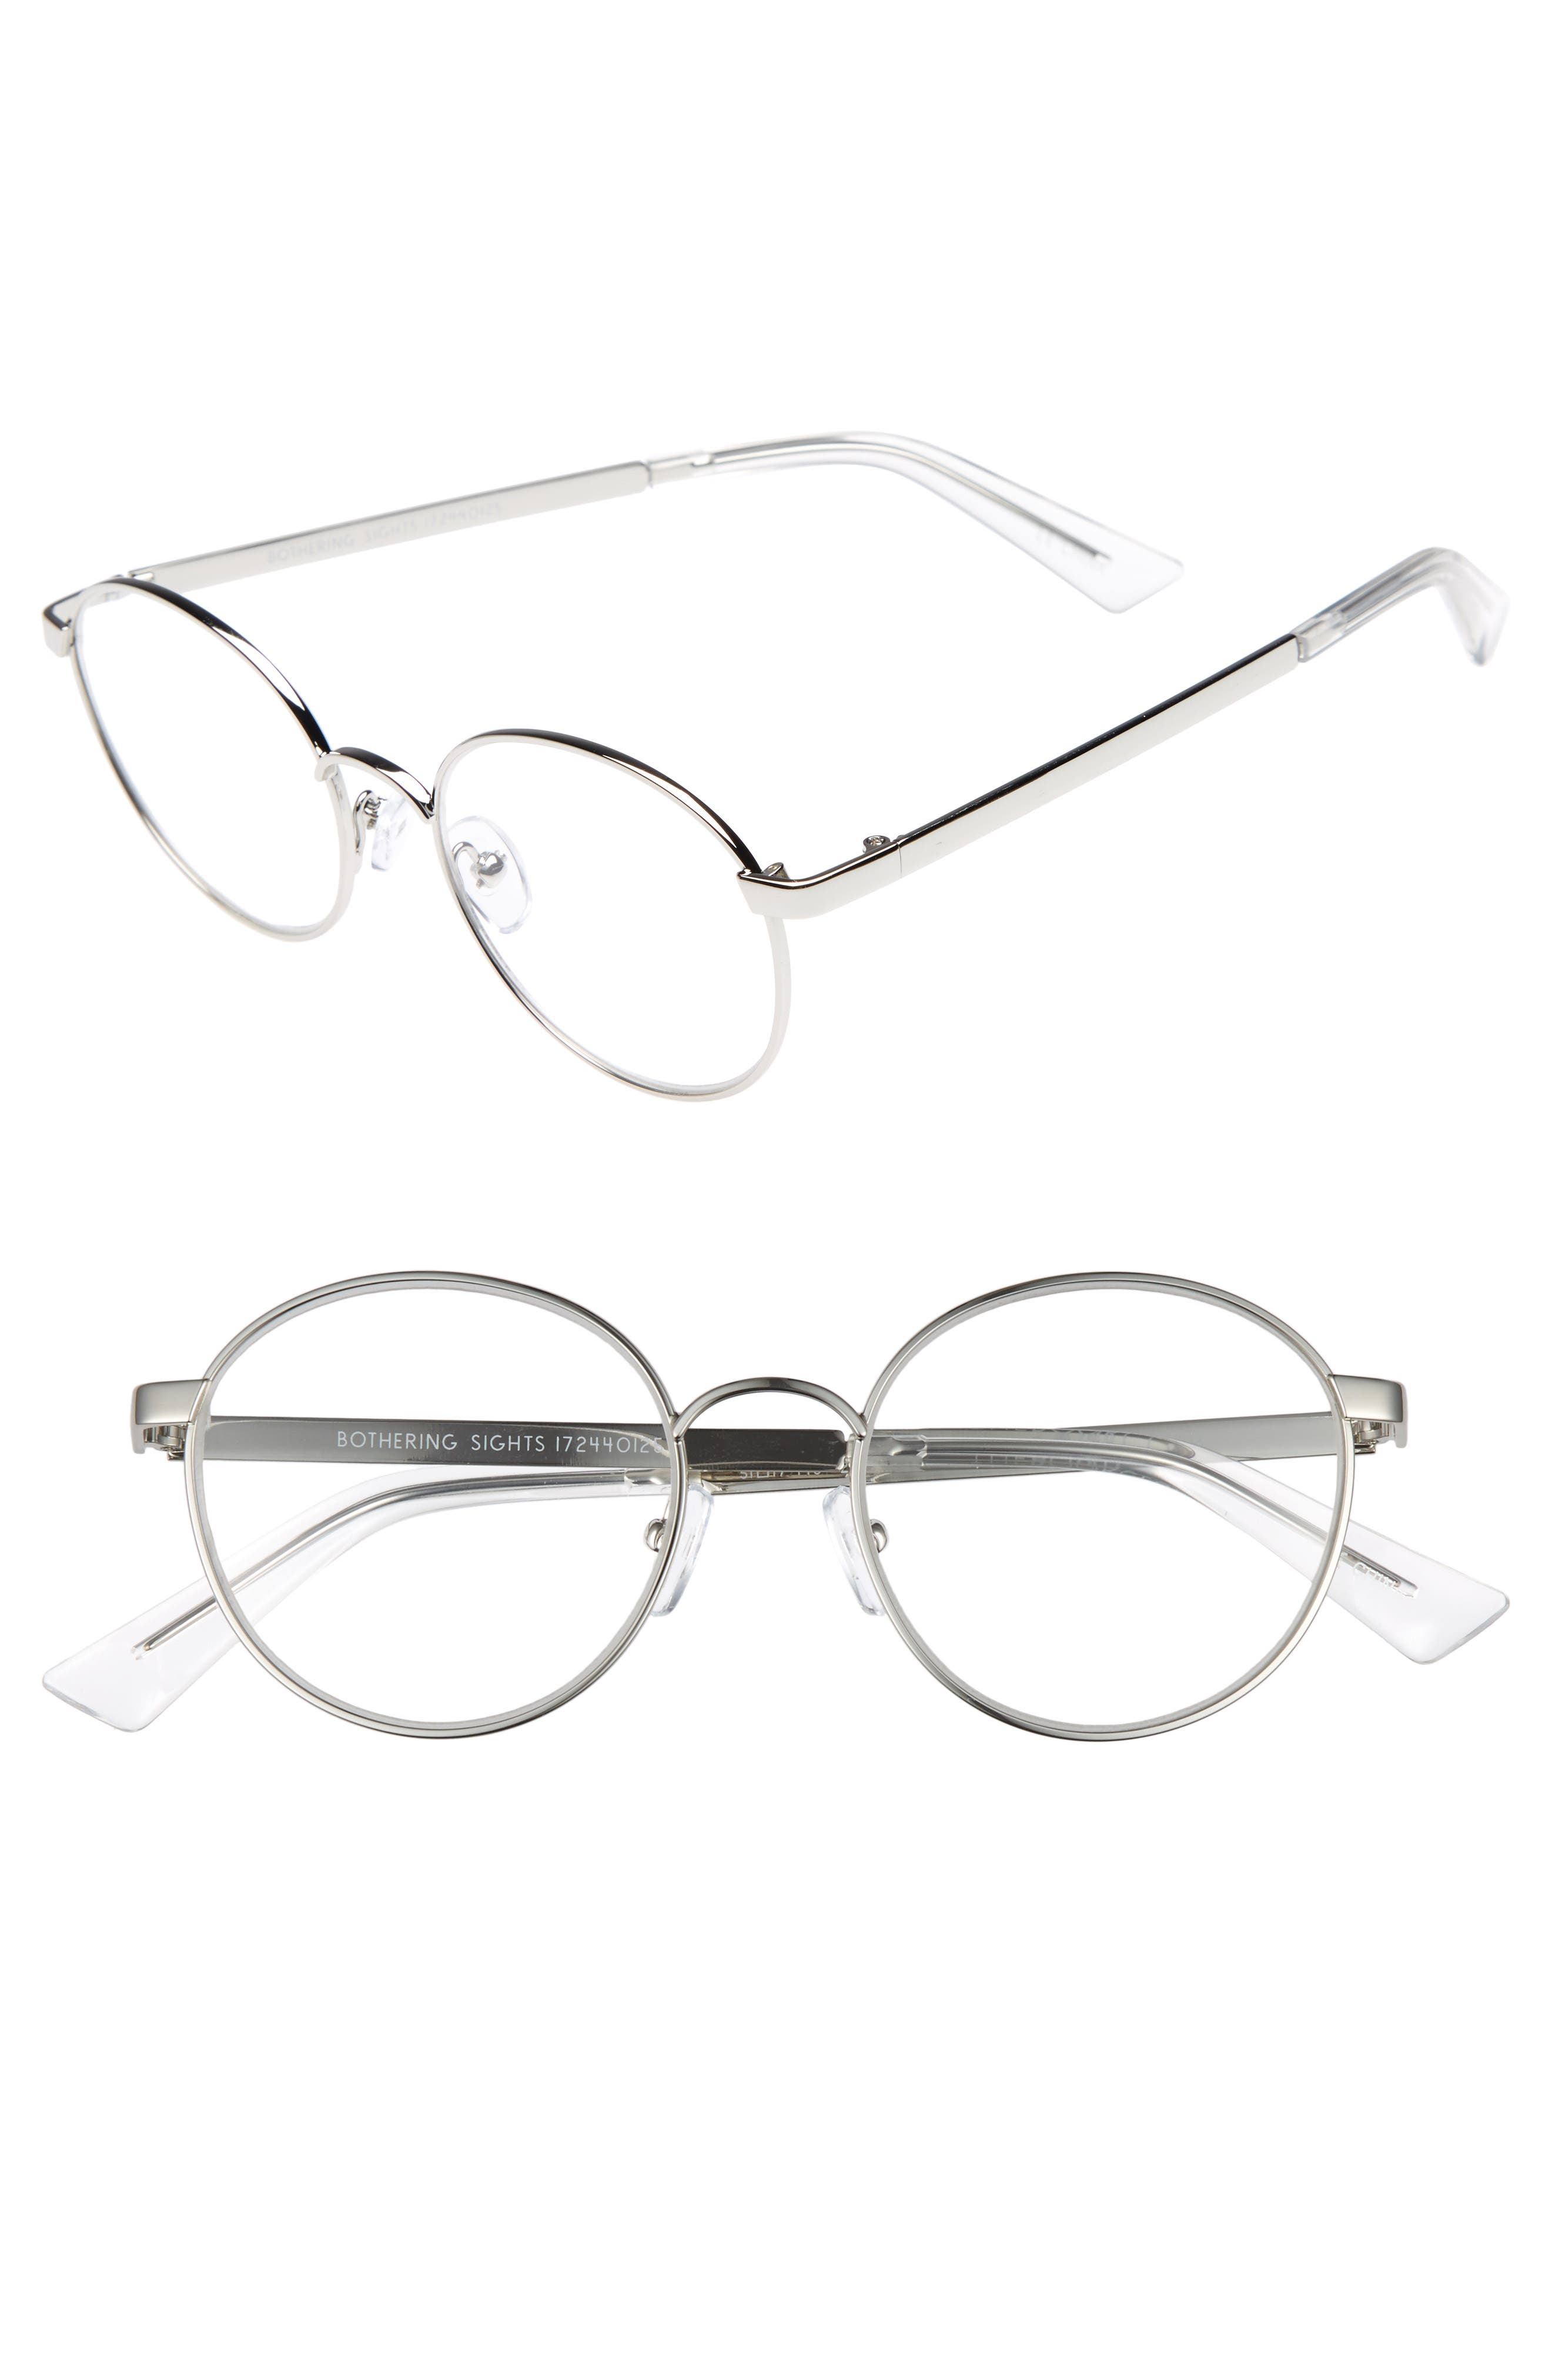 Bothering Sights 51mm Blue Light Filter Glasses,                             Main thumbnail 1, color,                             Silver/ Cellophane